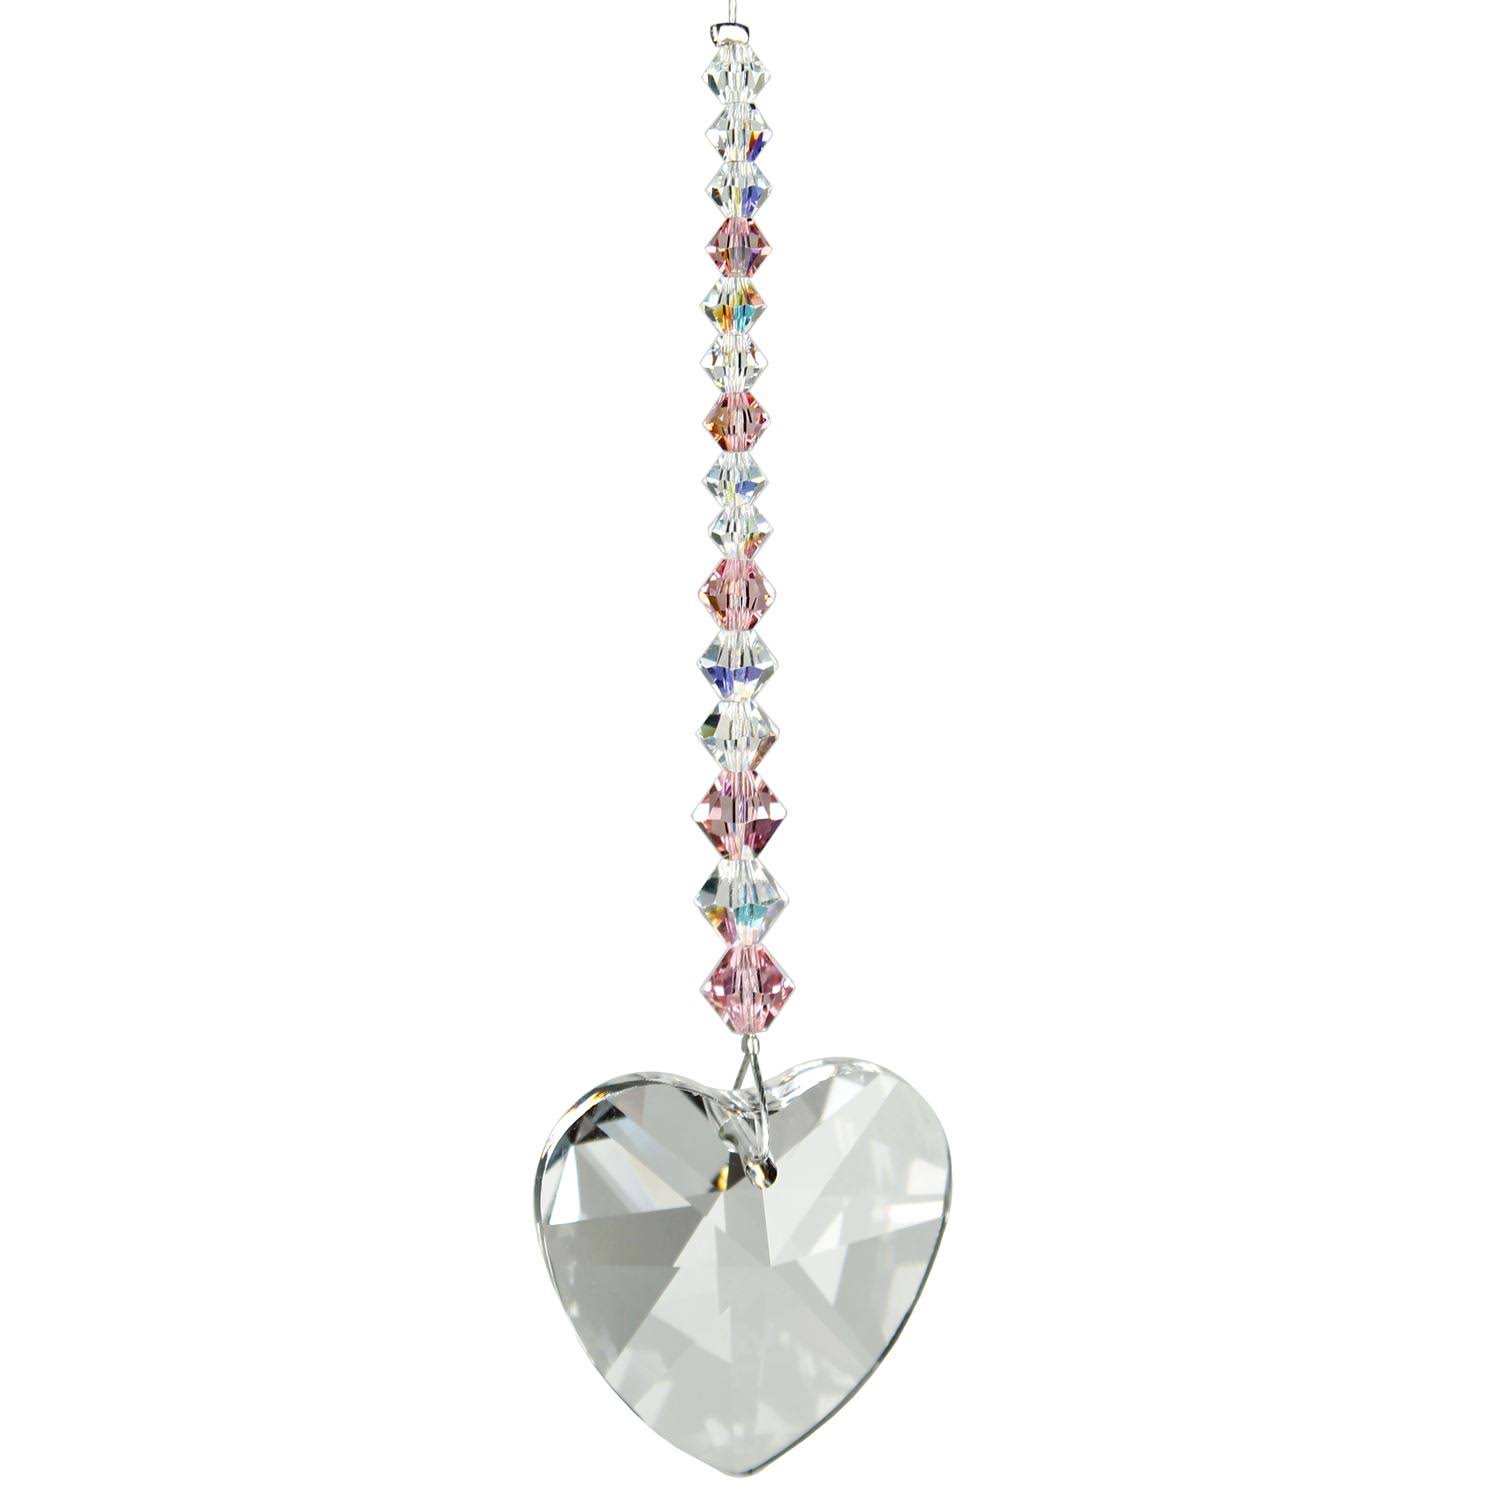 Woodstock Pink Heart Crystal Daydreams - Rainbow Maker Collection